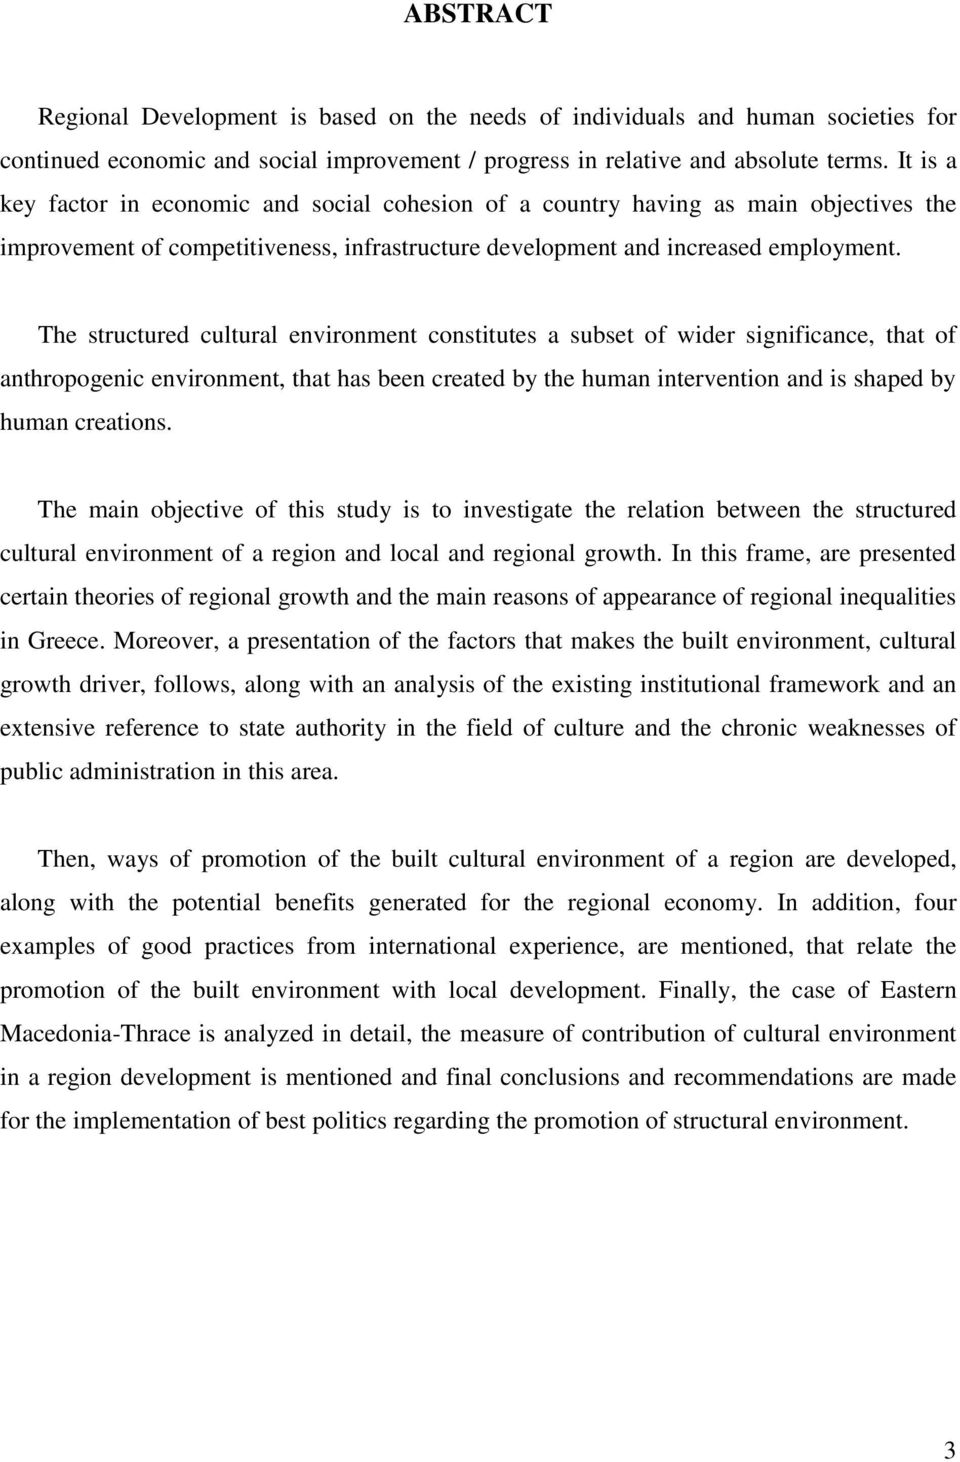 The structured cultural environment constitutes a subset of wider significance, that of anthropogenic environment, that has been created by the human intervention and is shaped by human creations.